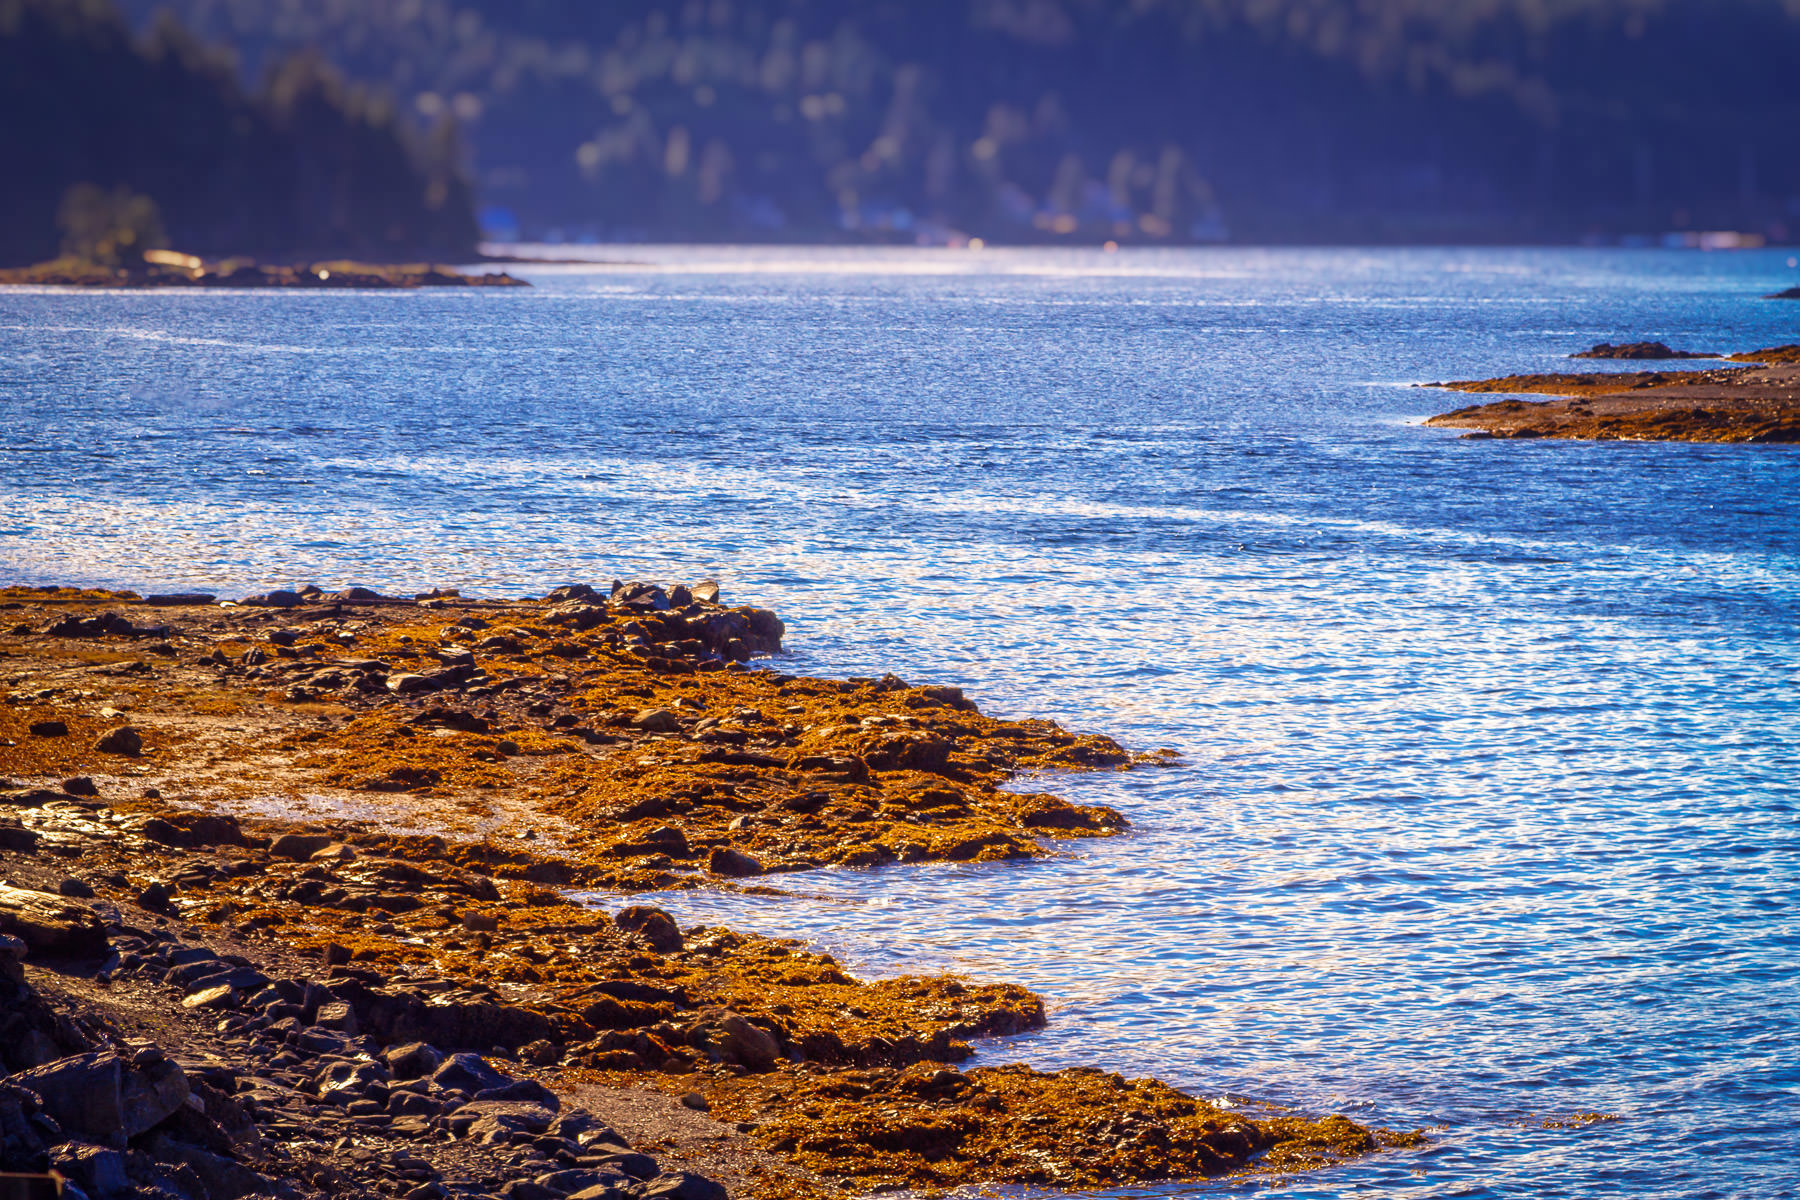 The shore of the Tongass Narrows between Mud Bay and Refuge Cove in Ketchikan, Alaska.